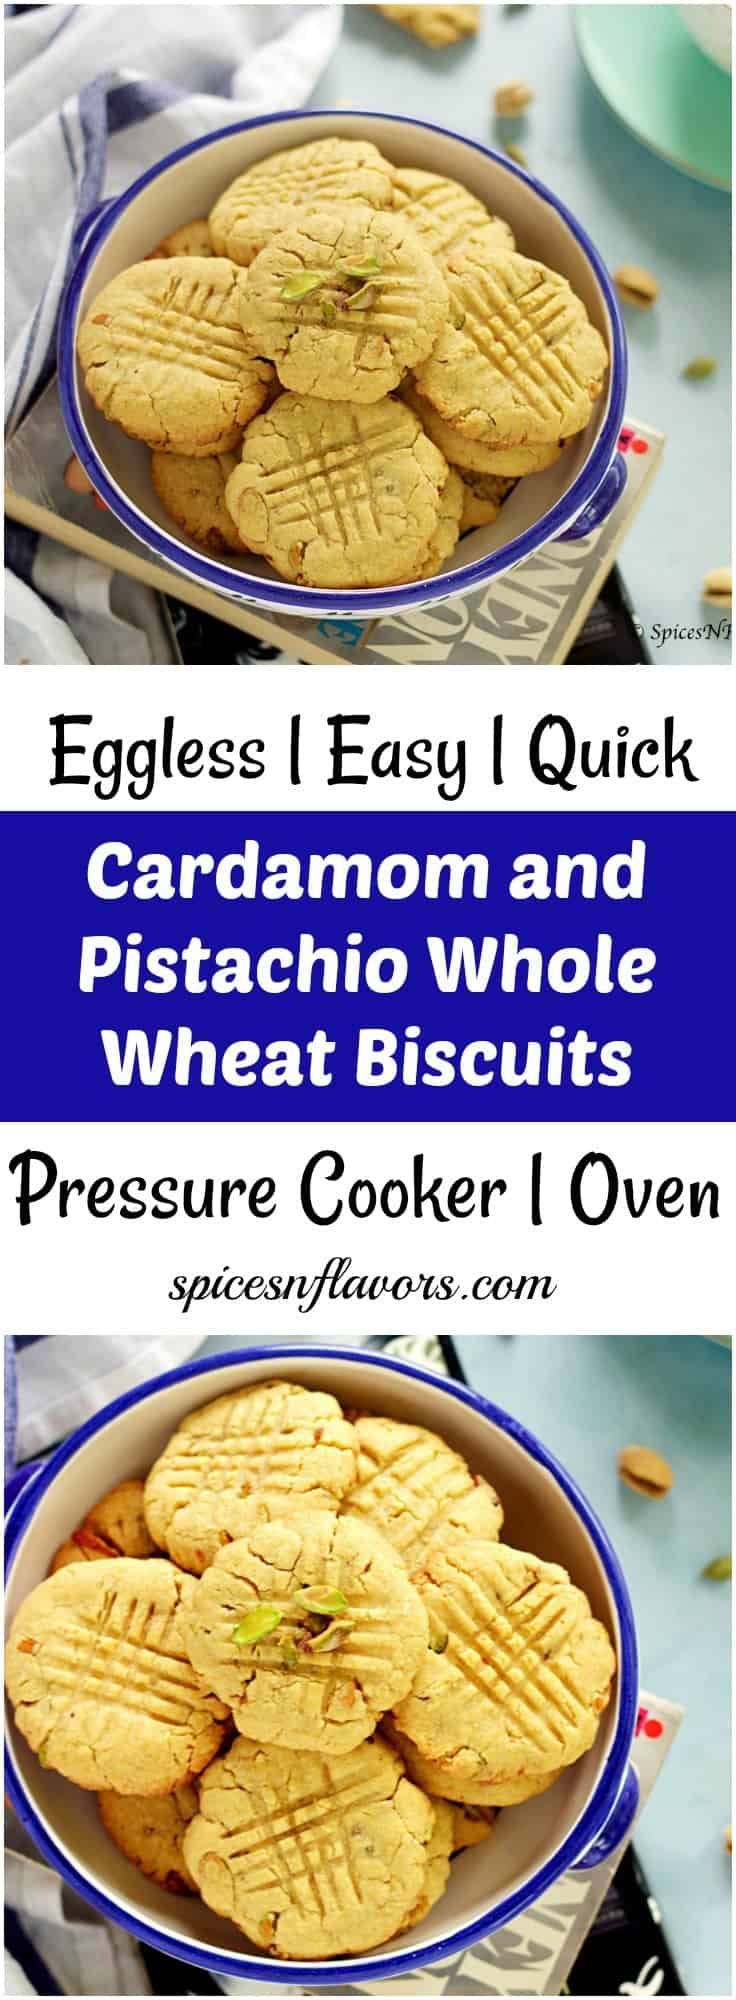 cardamom and pistachio whole wheat cookies pin image